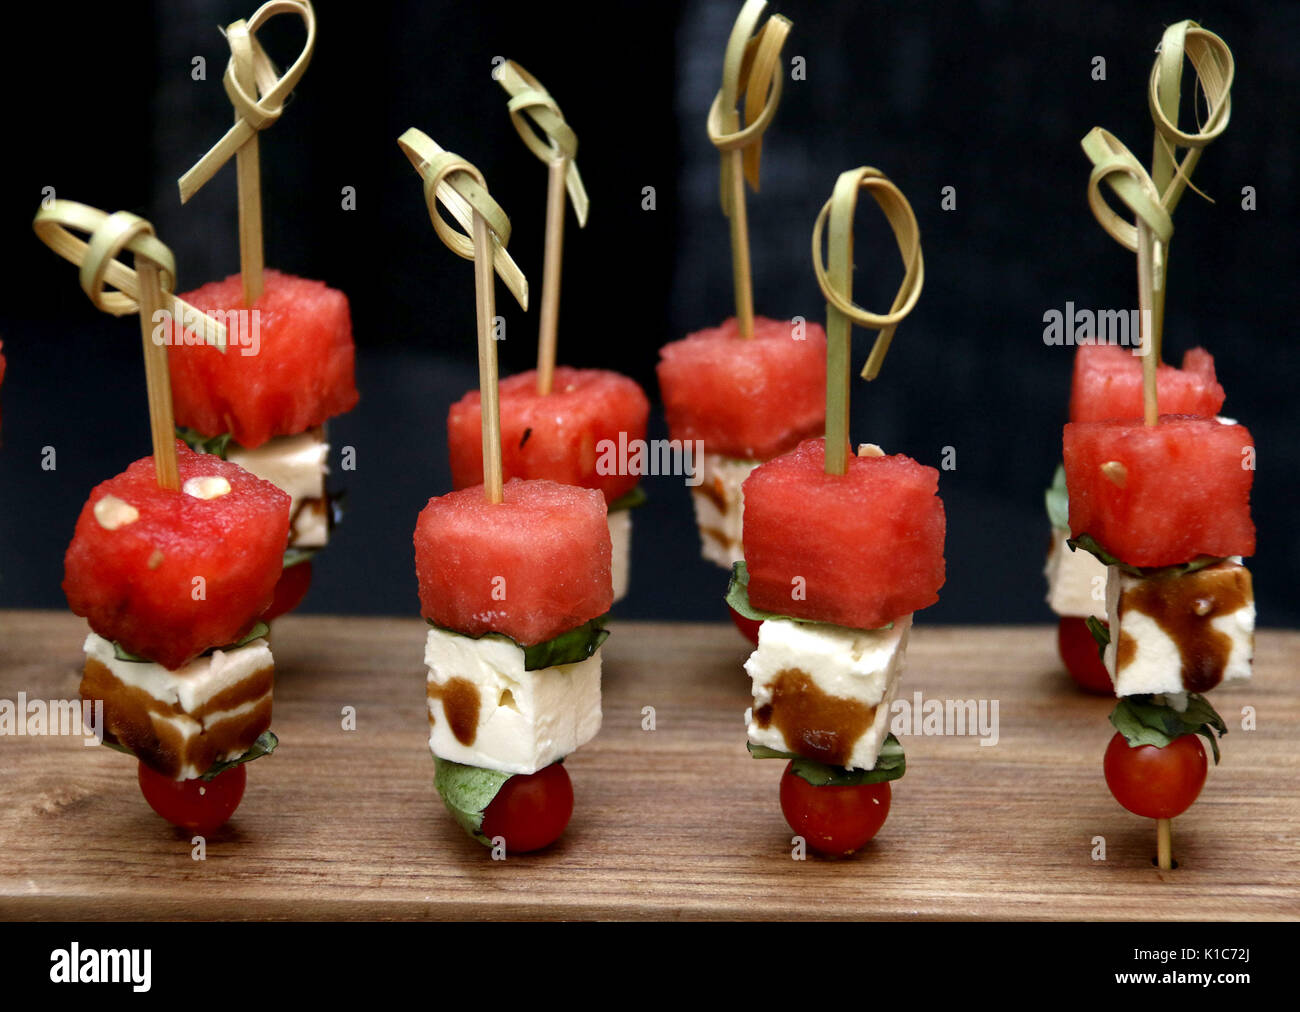 Watermelon Feta Salad Hors d'oeuvres - Stock Image